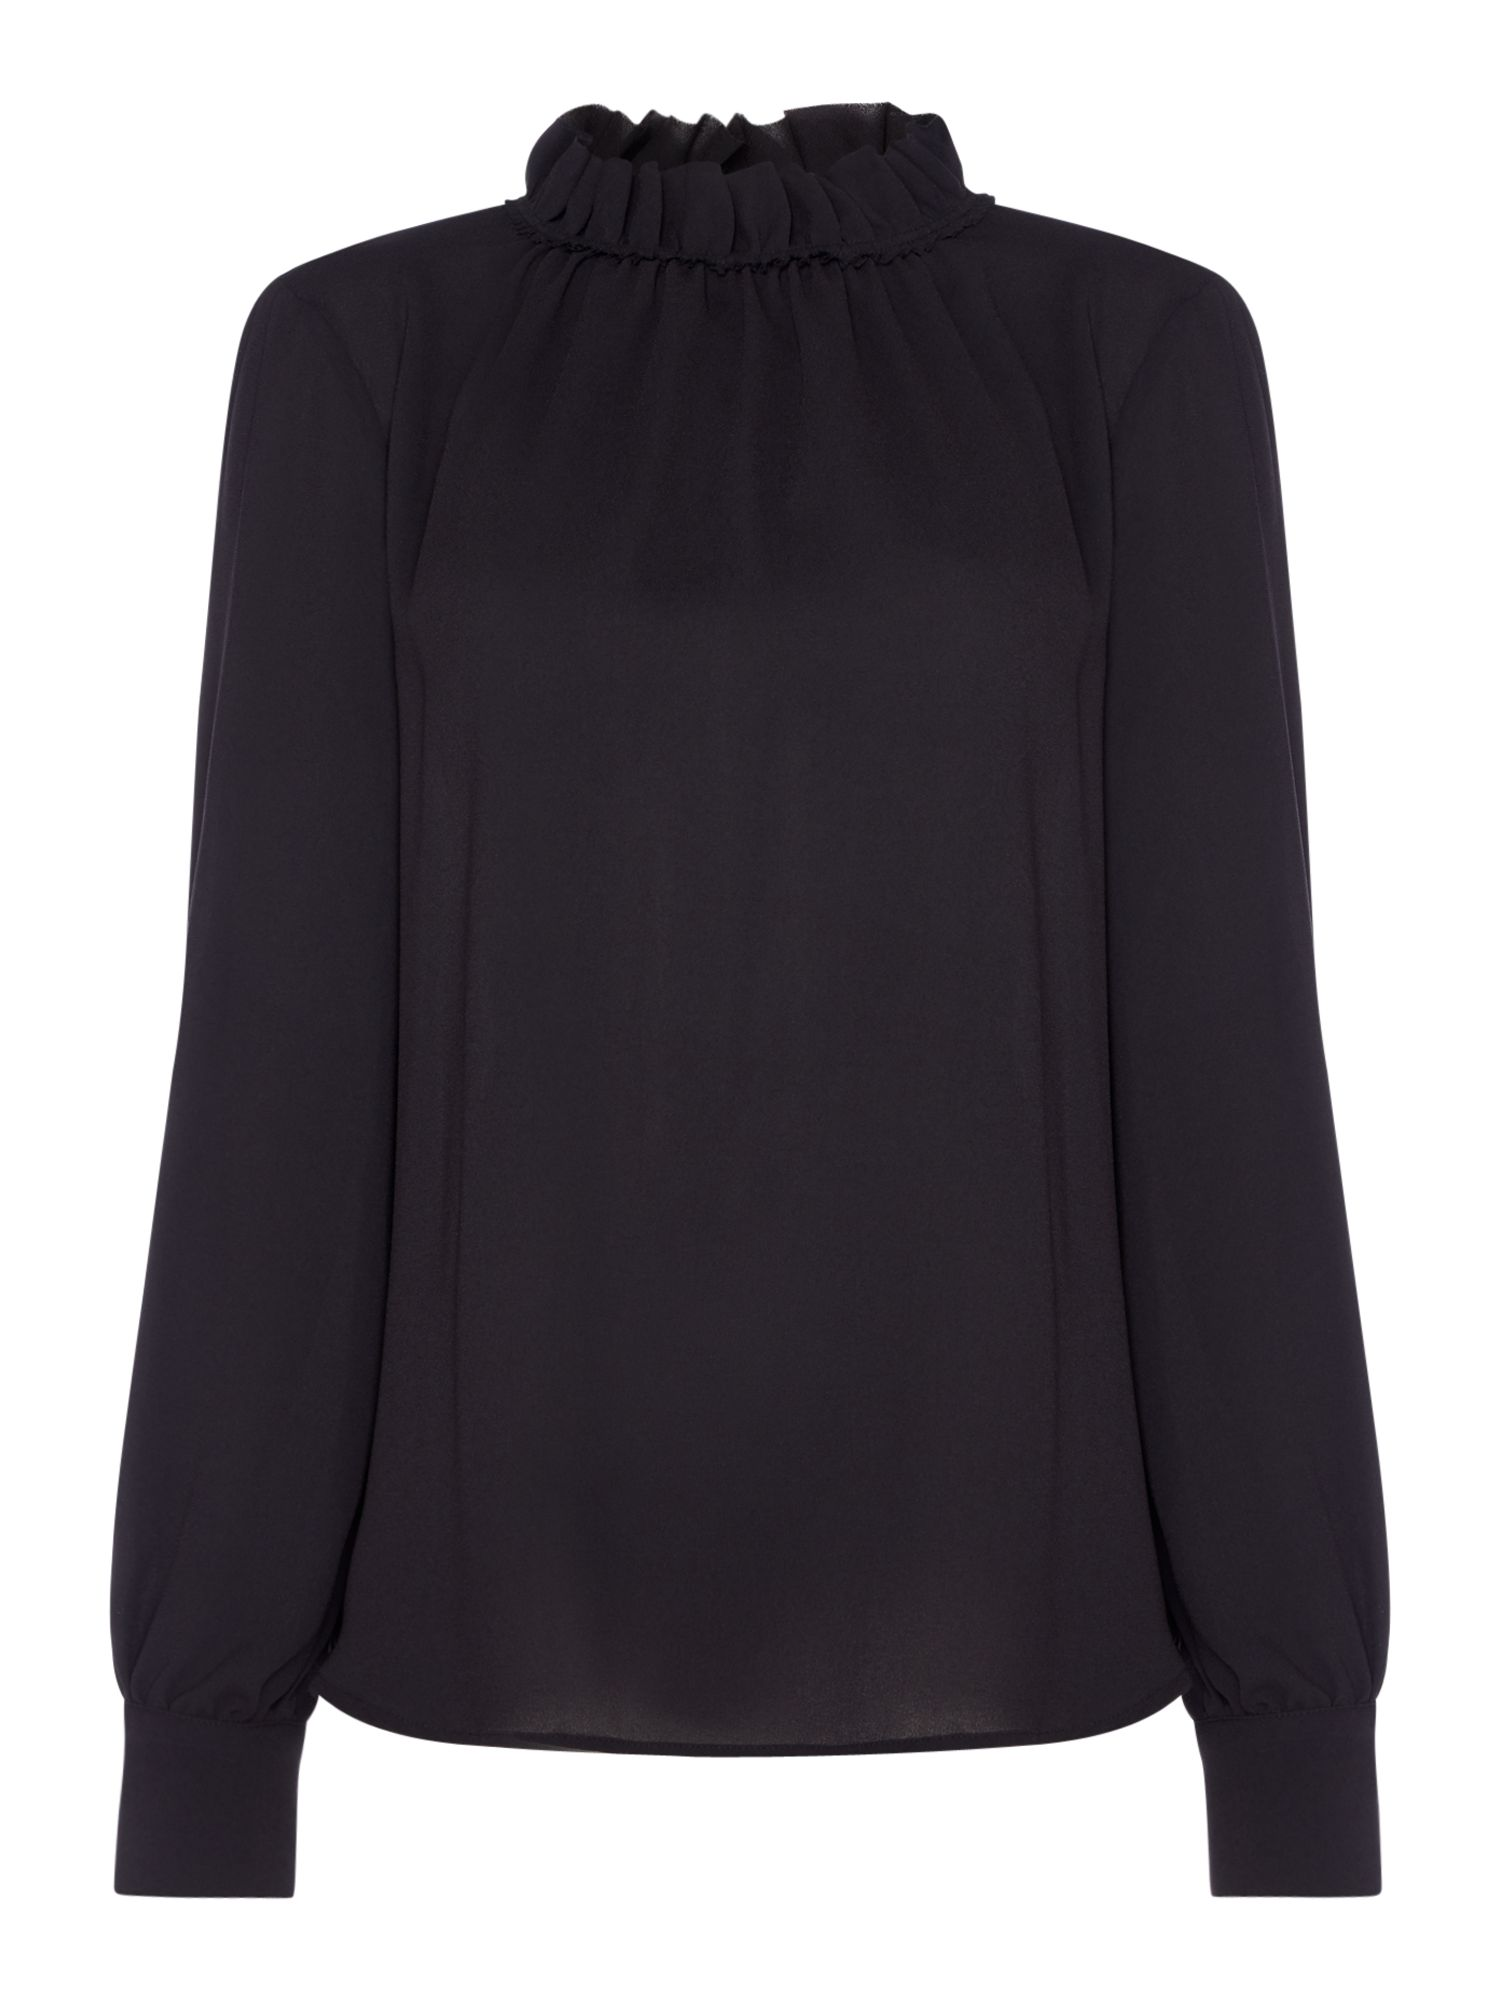 Marella Lecce ruched blouse, Black